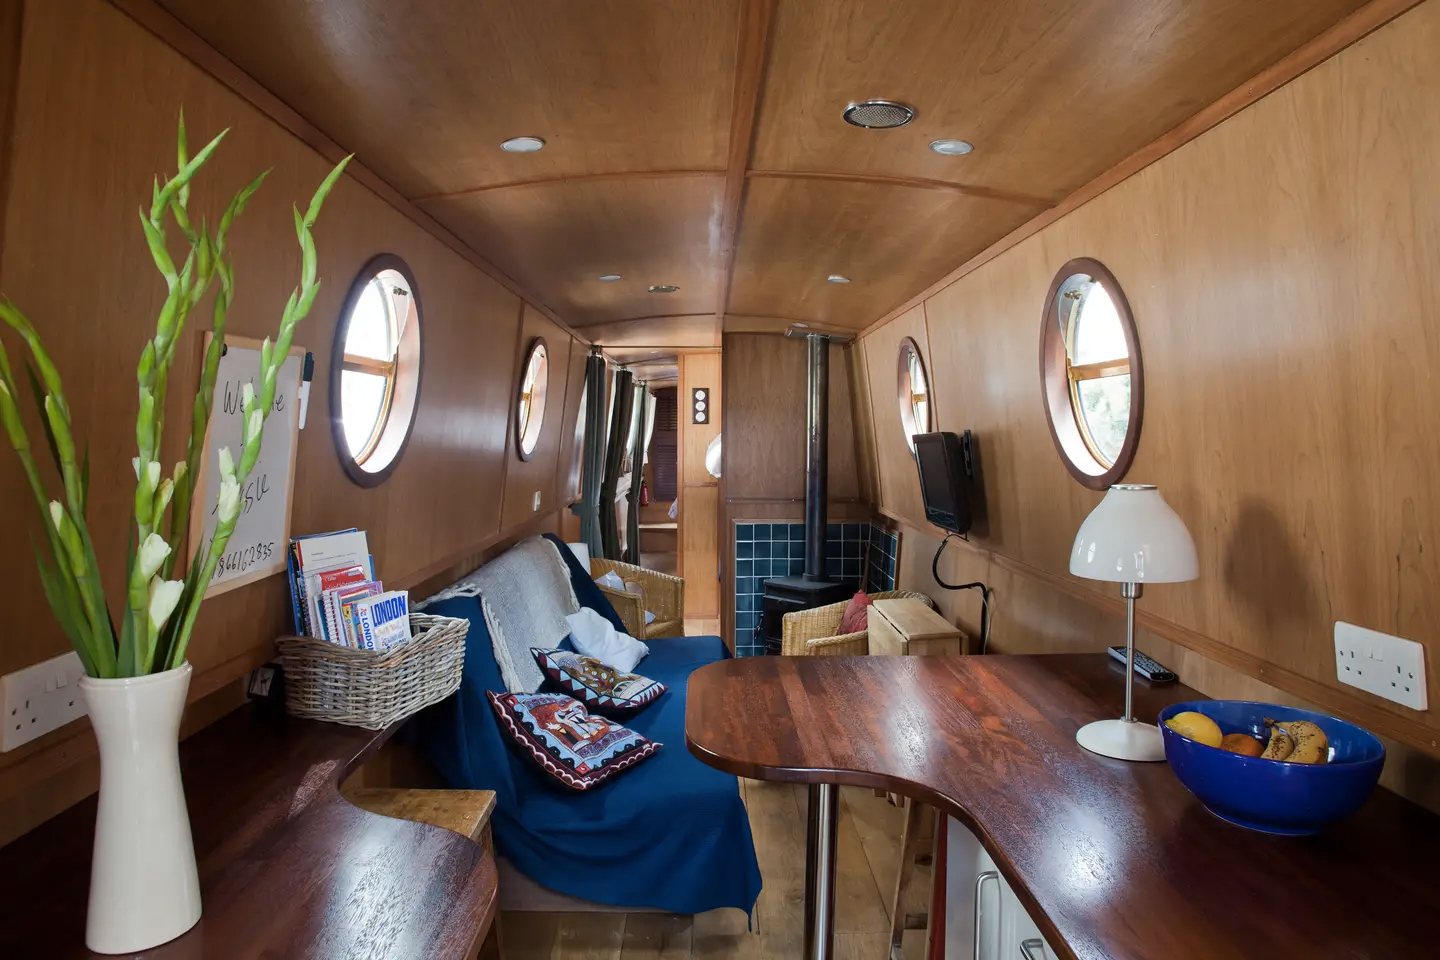 Jessie the narrowboat - Airbnb